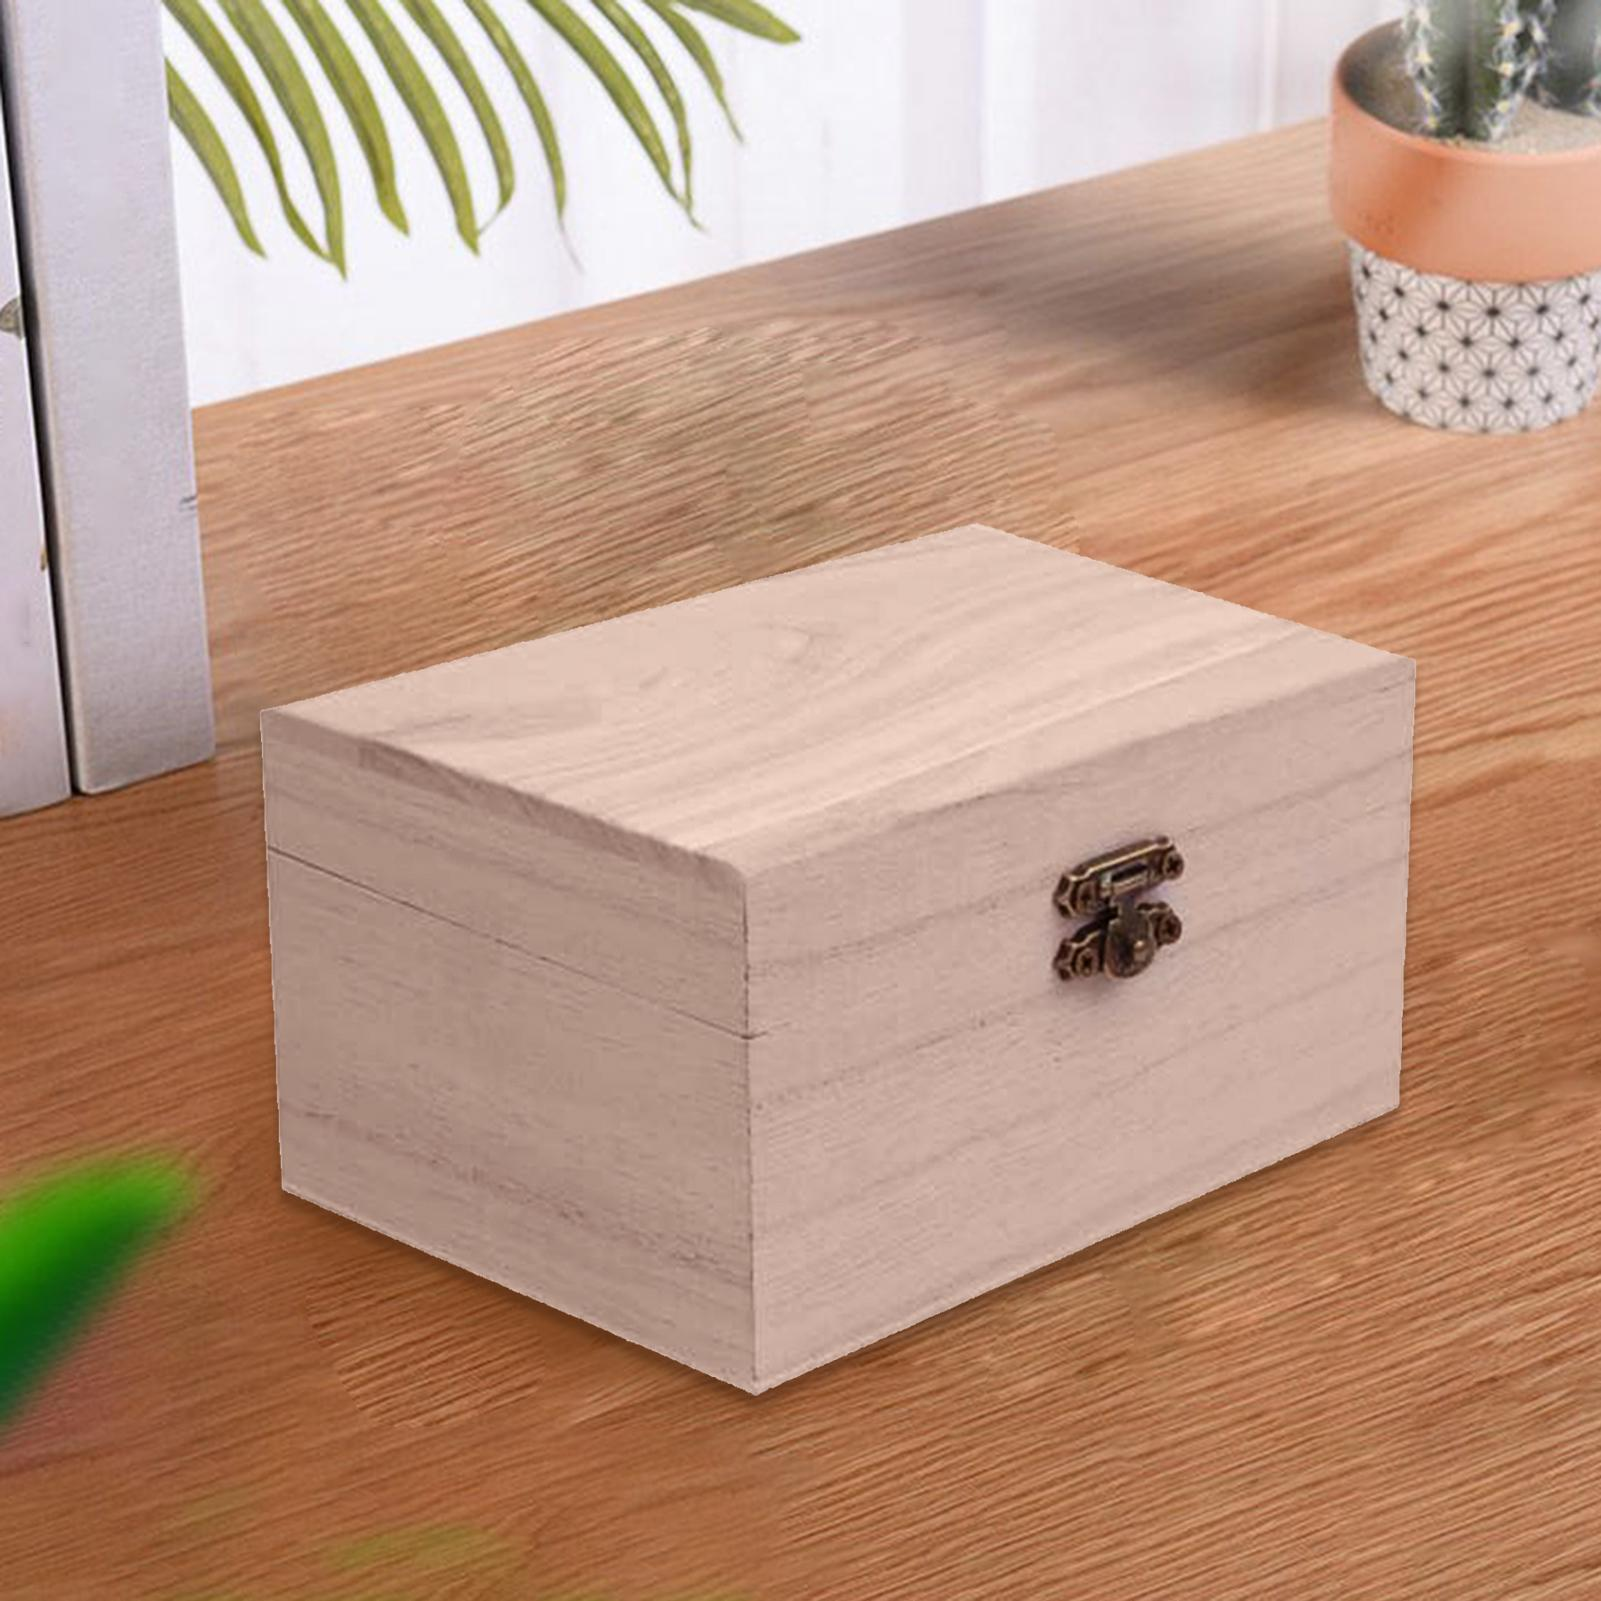 Portable Multifunction Case with Lid Wooden Jewellery Storage Container for Home Supply